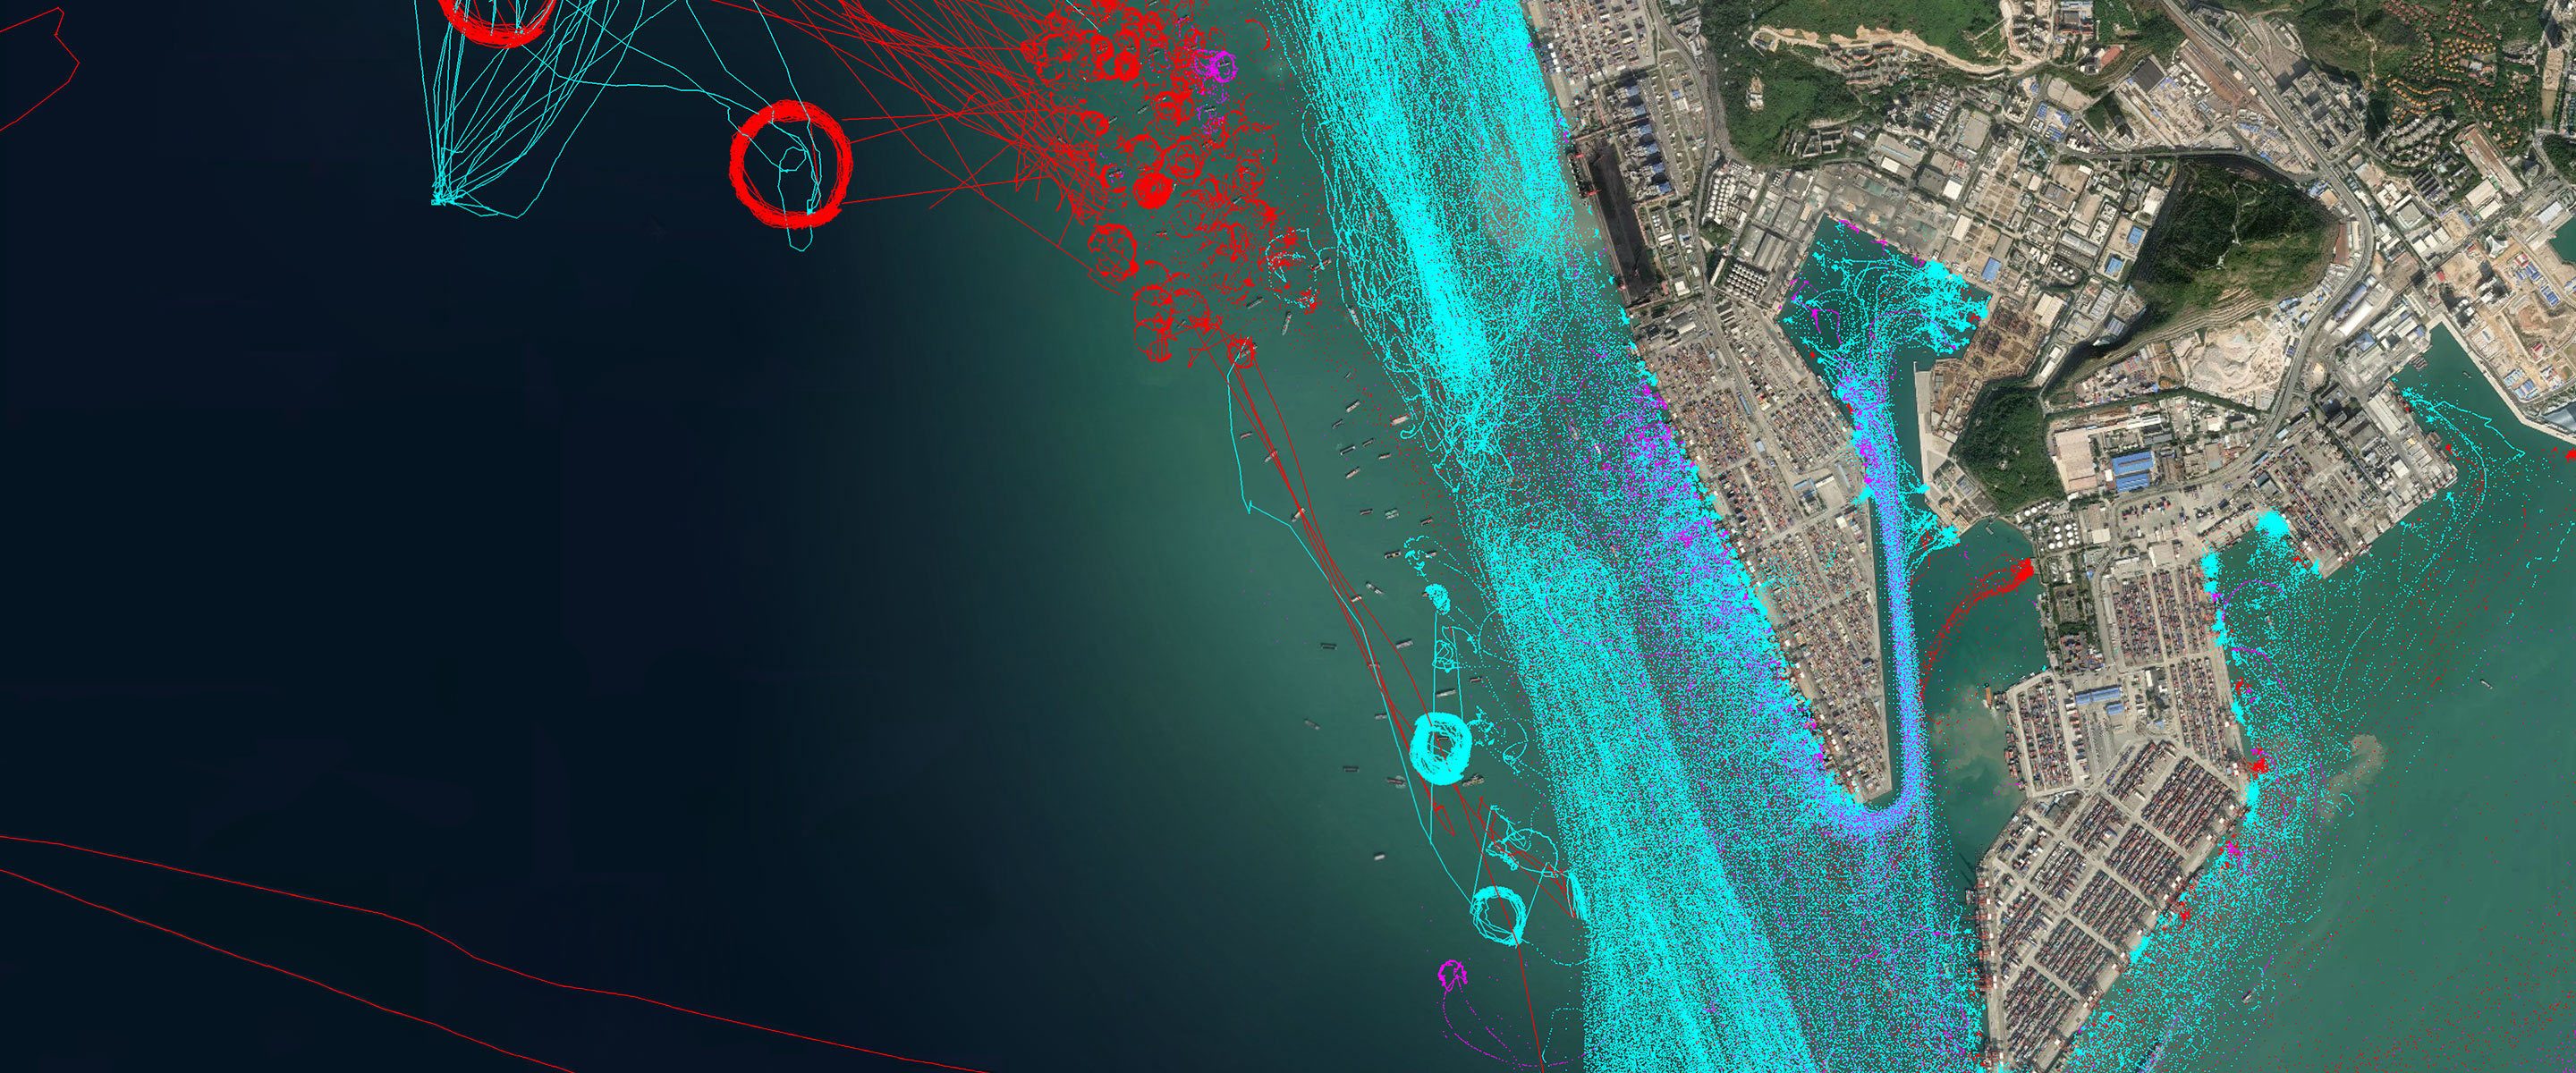 Live AIS Vessel Tracker with Ship and Port Database